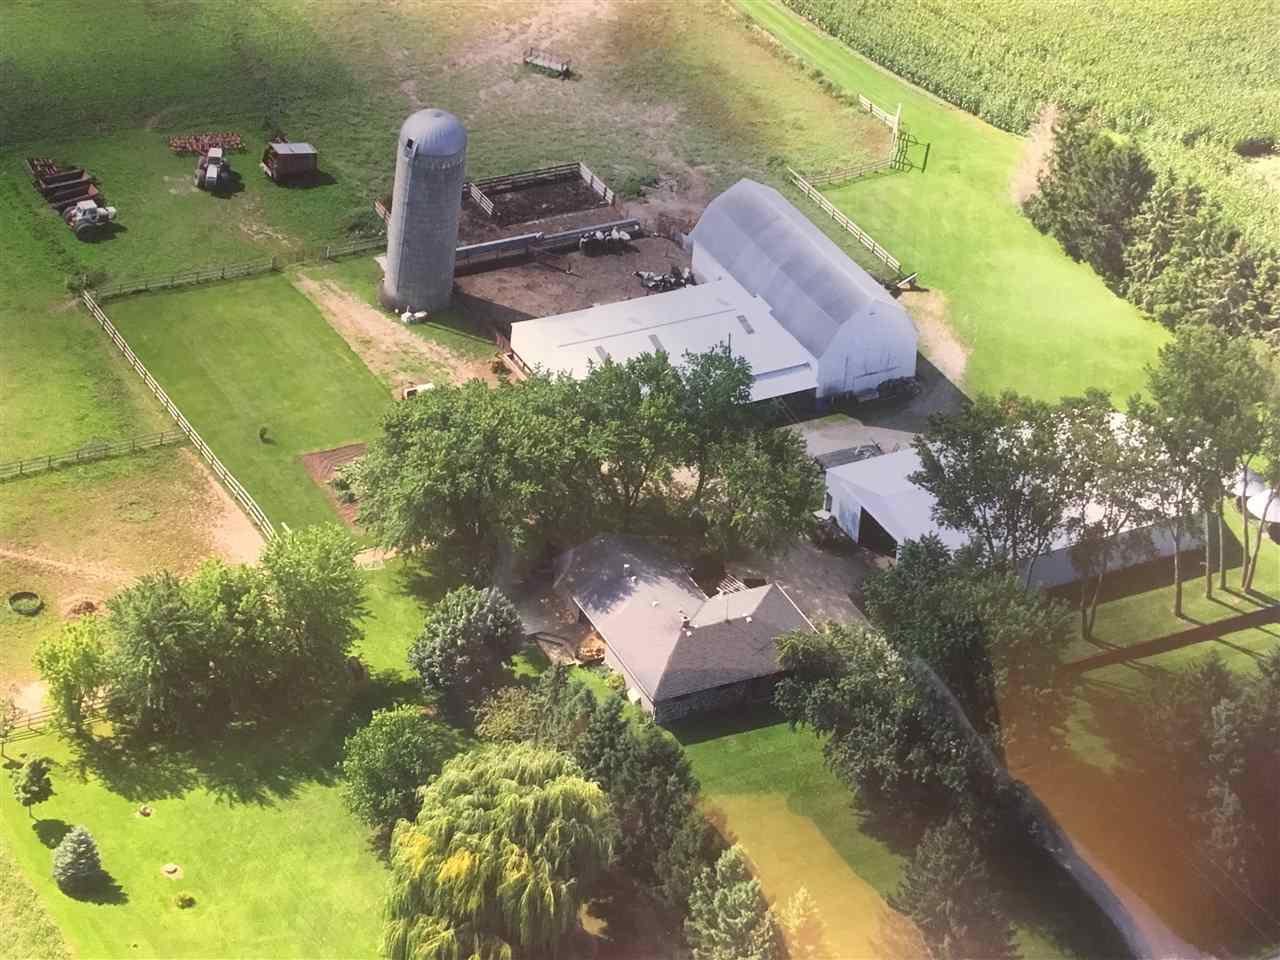 A rare find, a turn key apr. 8 acre farmette with a 36x76' barn, a 50x70' addition, a 55x90' pole building. Currently set for beef and horses but could easily be converted. Also a beautifully redone 3 bdrm ranch house with a lower level Family room plus a first floor breezeway with a pellet fireplace insert. The furnace is a dual heat source that heats with wood as well as fuel oil and will shift automatically if it runs out of wood. Add a wrap-around deck with a panoramic view plus a fenced in riding area and you will soon fall in love with your very own piece of paradise.